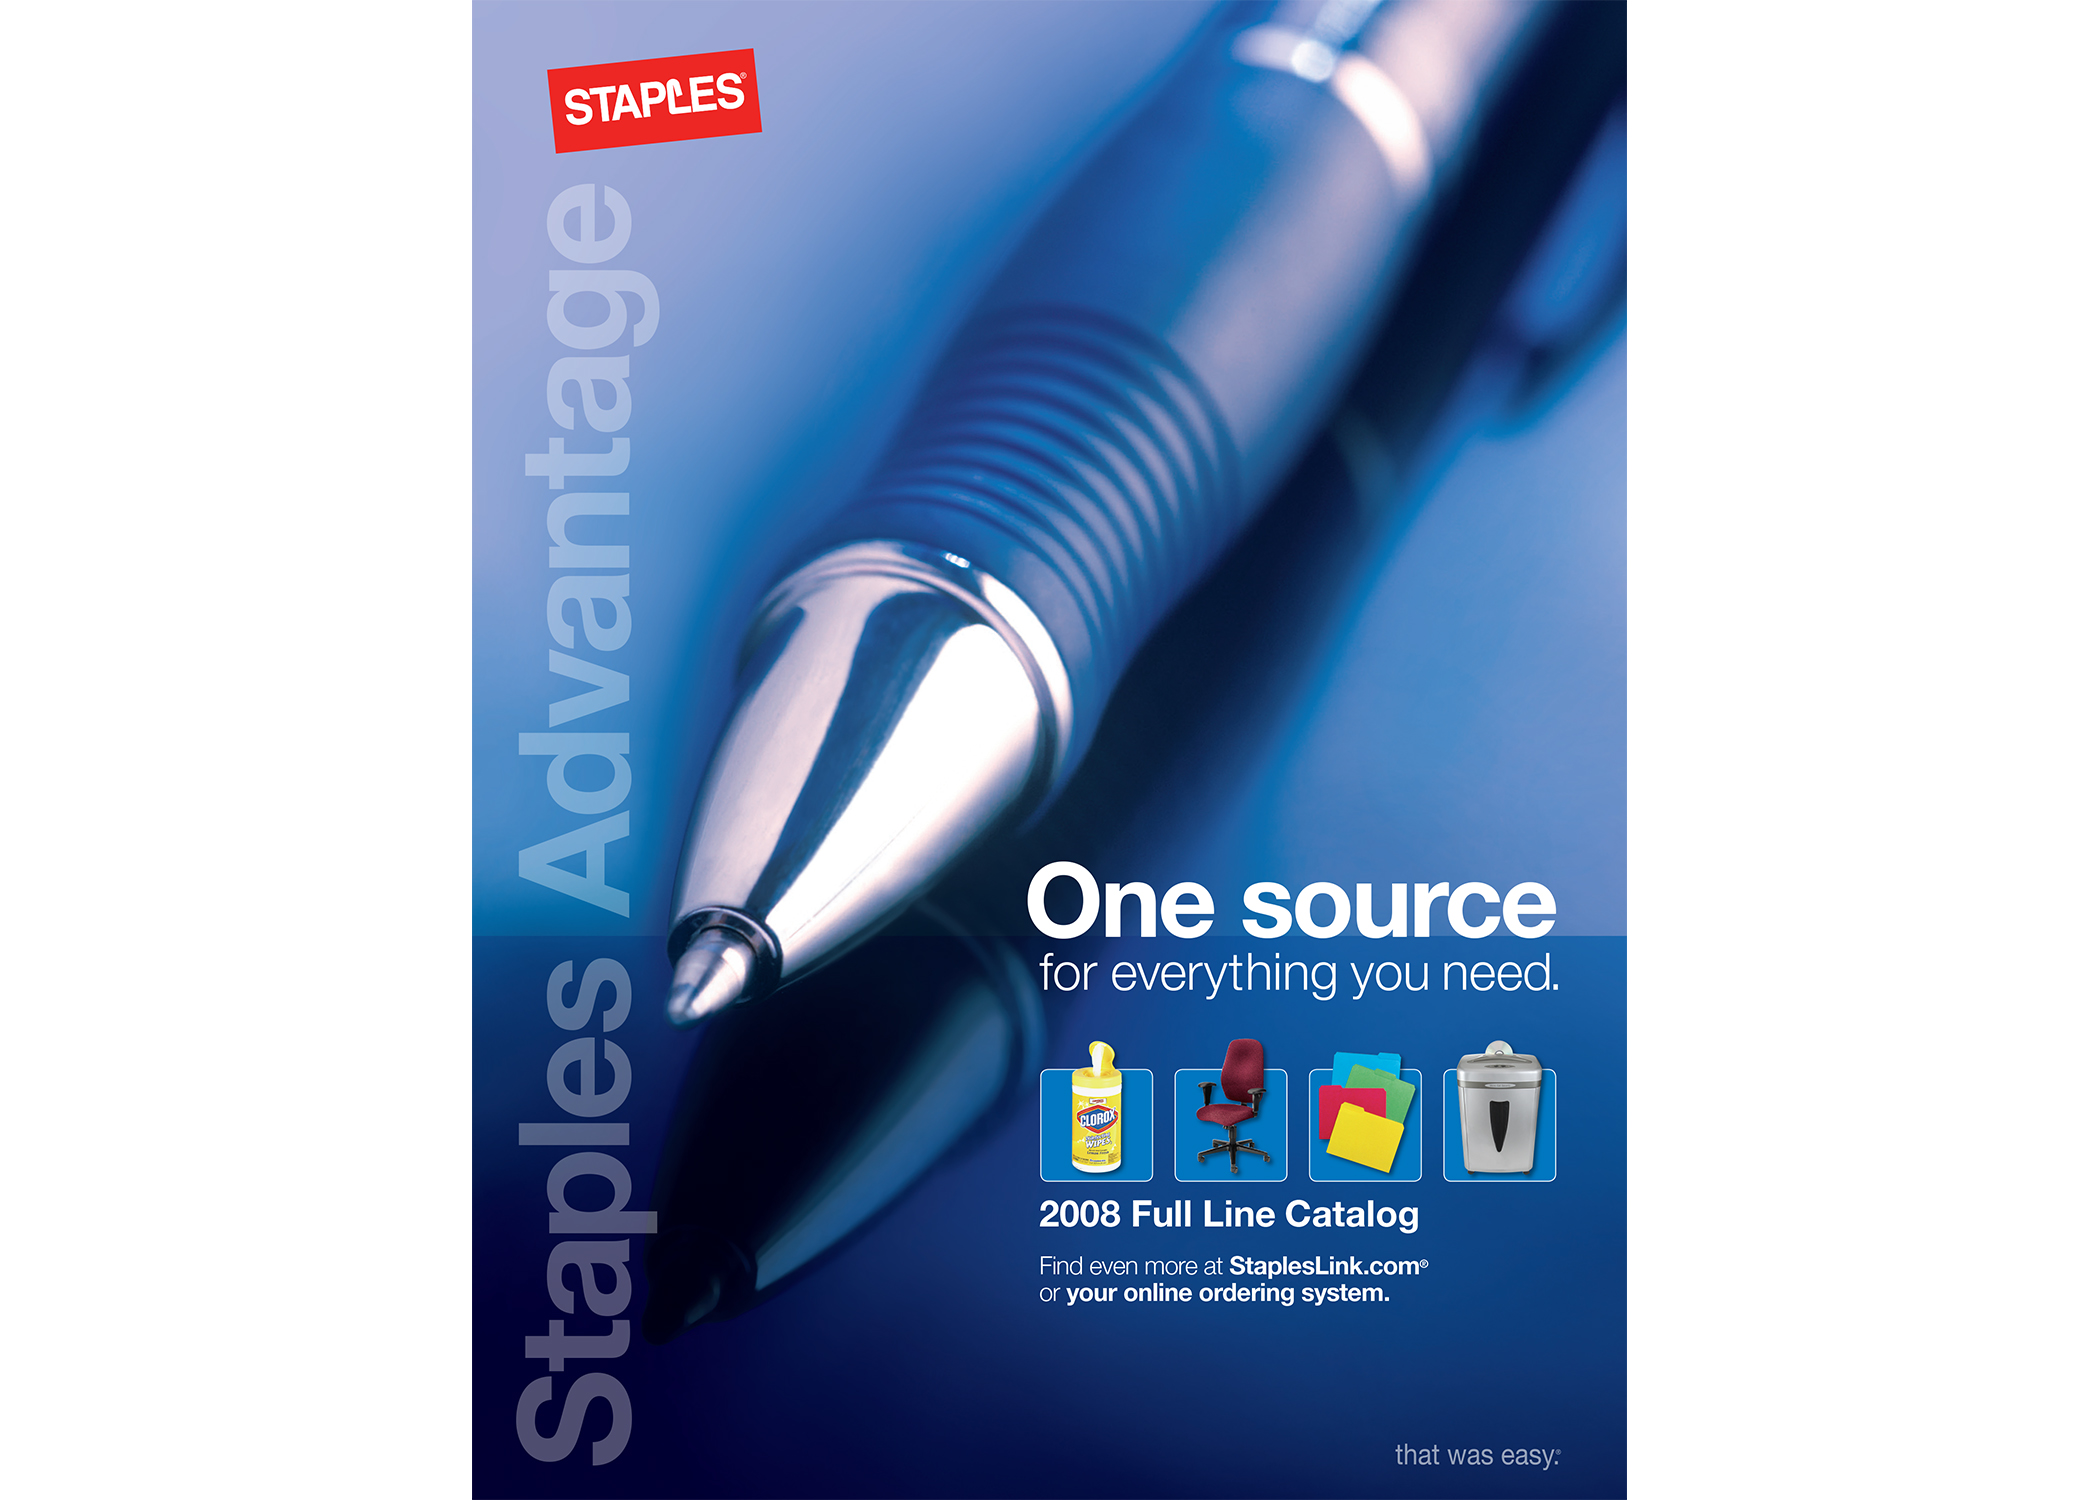 Staples Final Cover.jpg